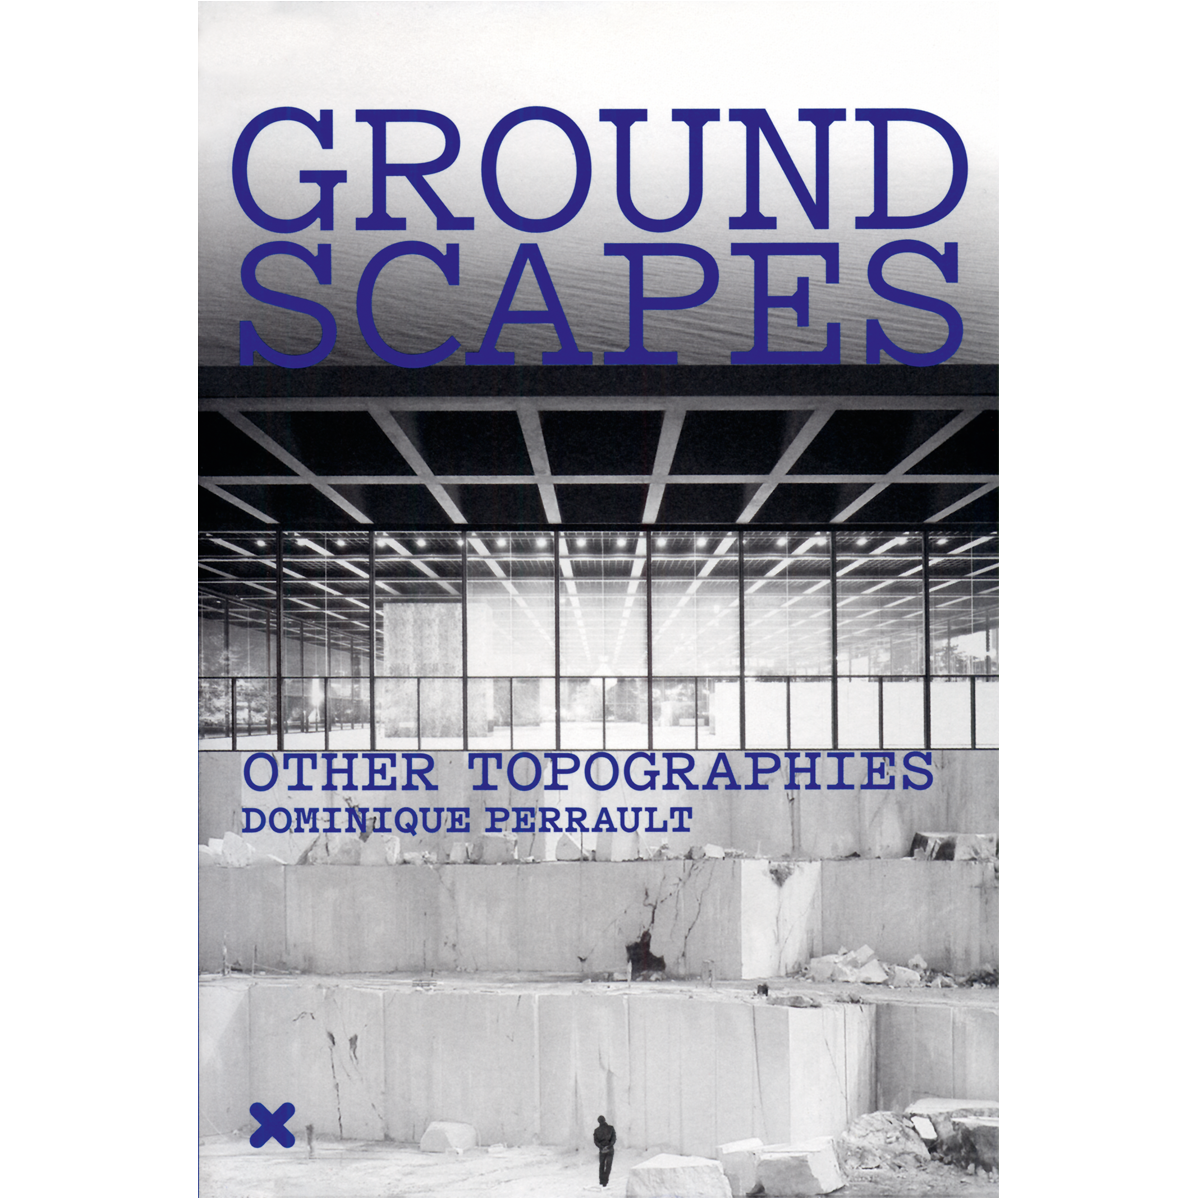 Groundscapes